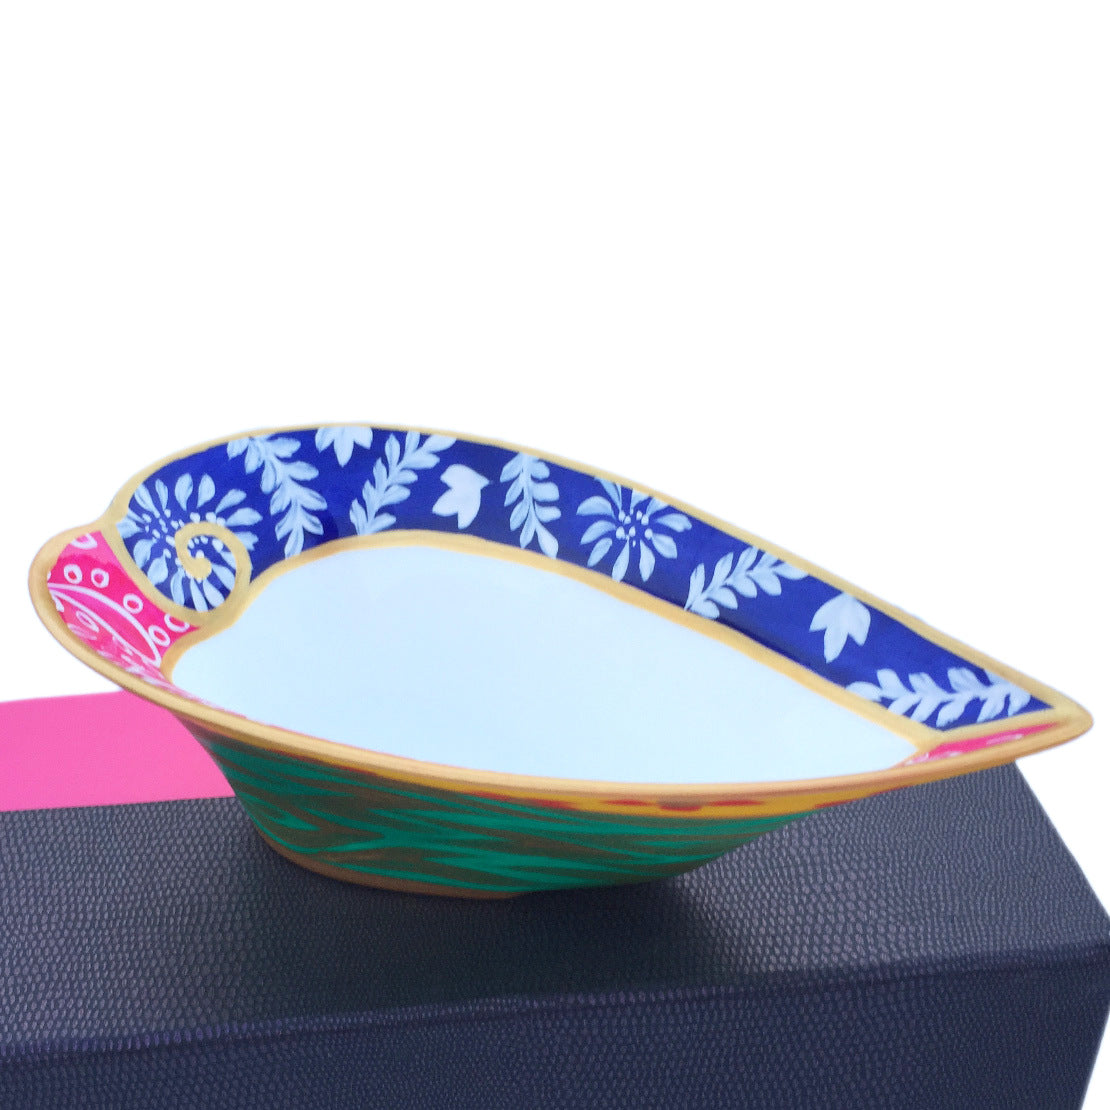 DIVERSITY - painted Heart Shaped Bowl in bone china, Gift boxed